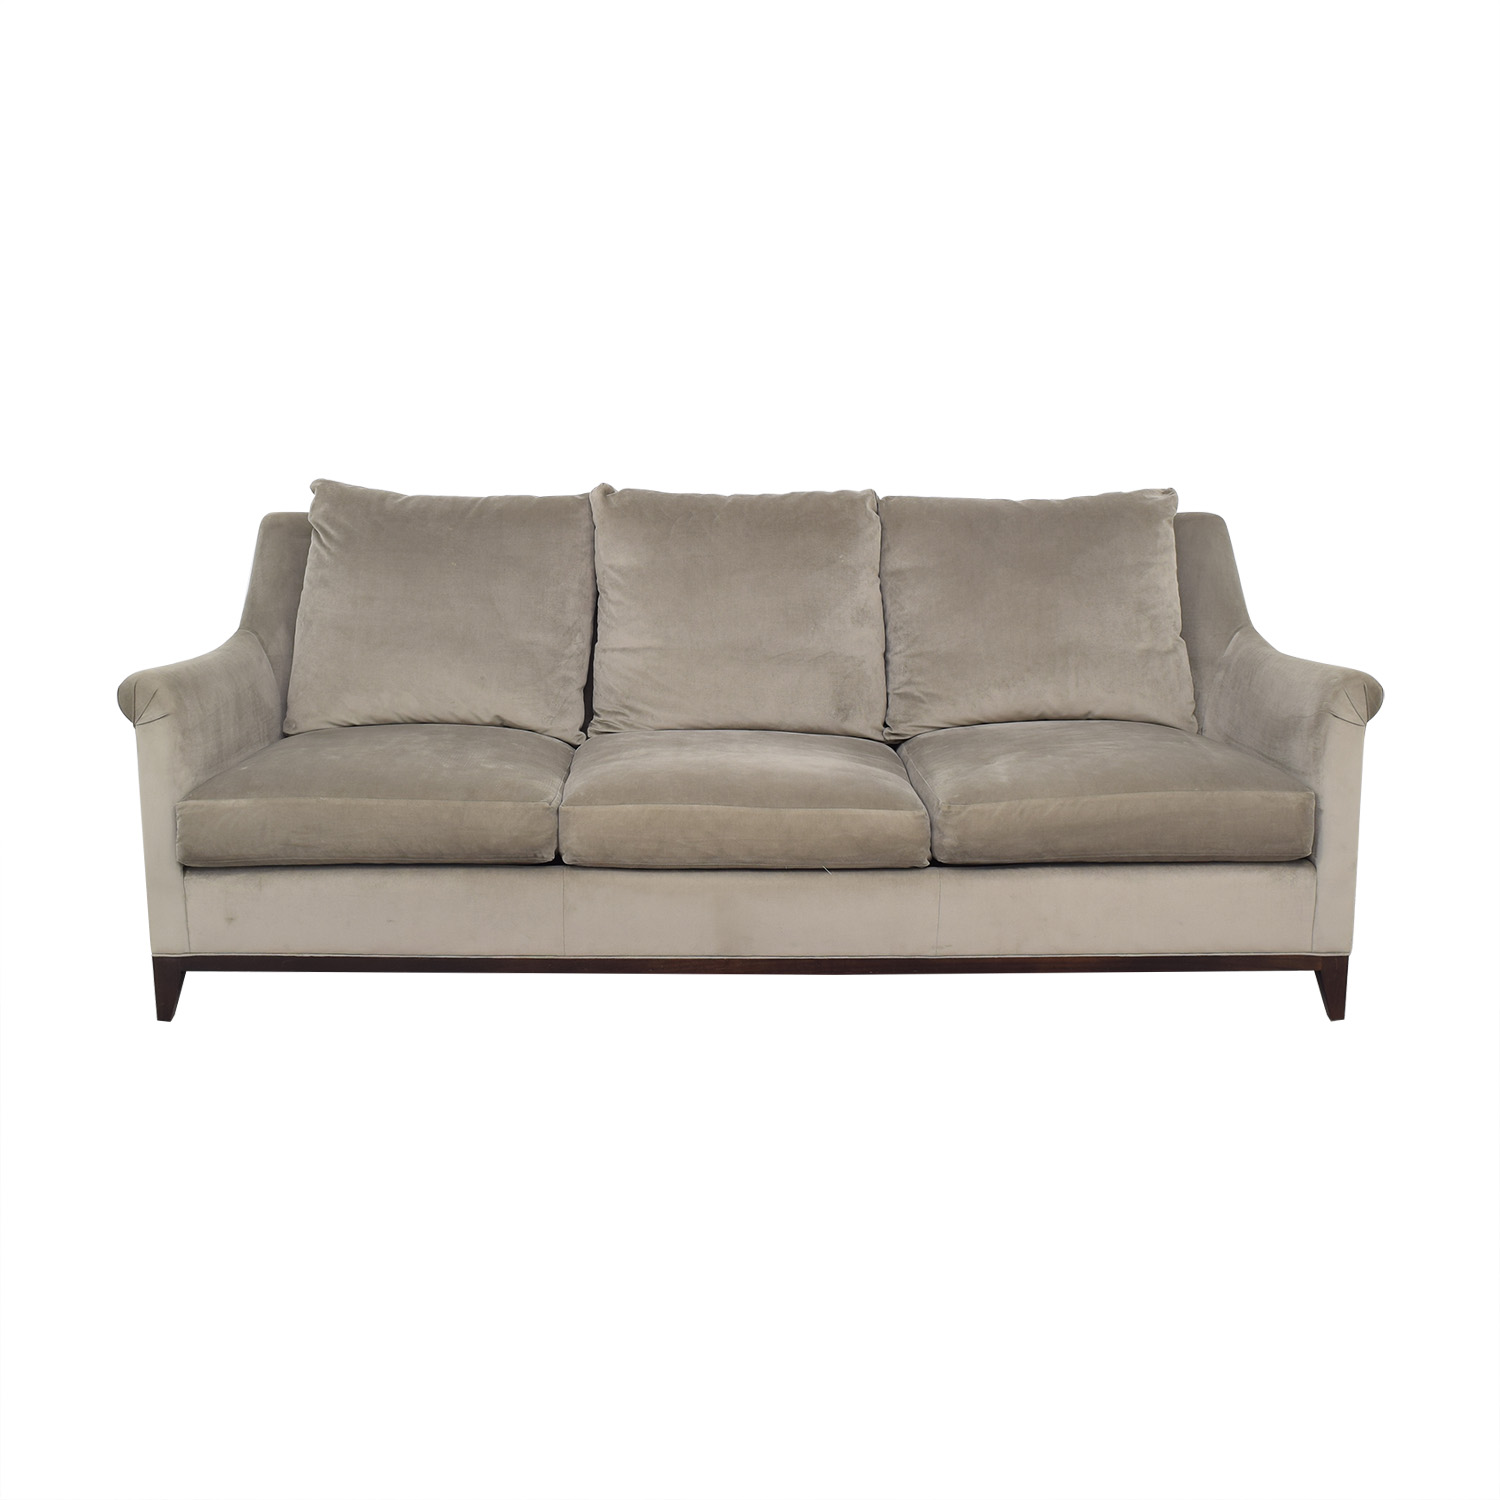 shop Safavieh Safavieh Roll Arm Velvet Sofa online